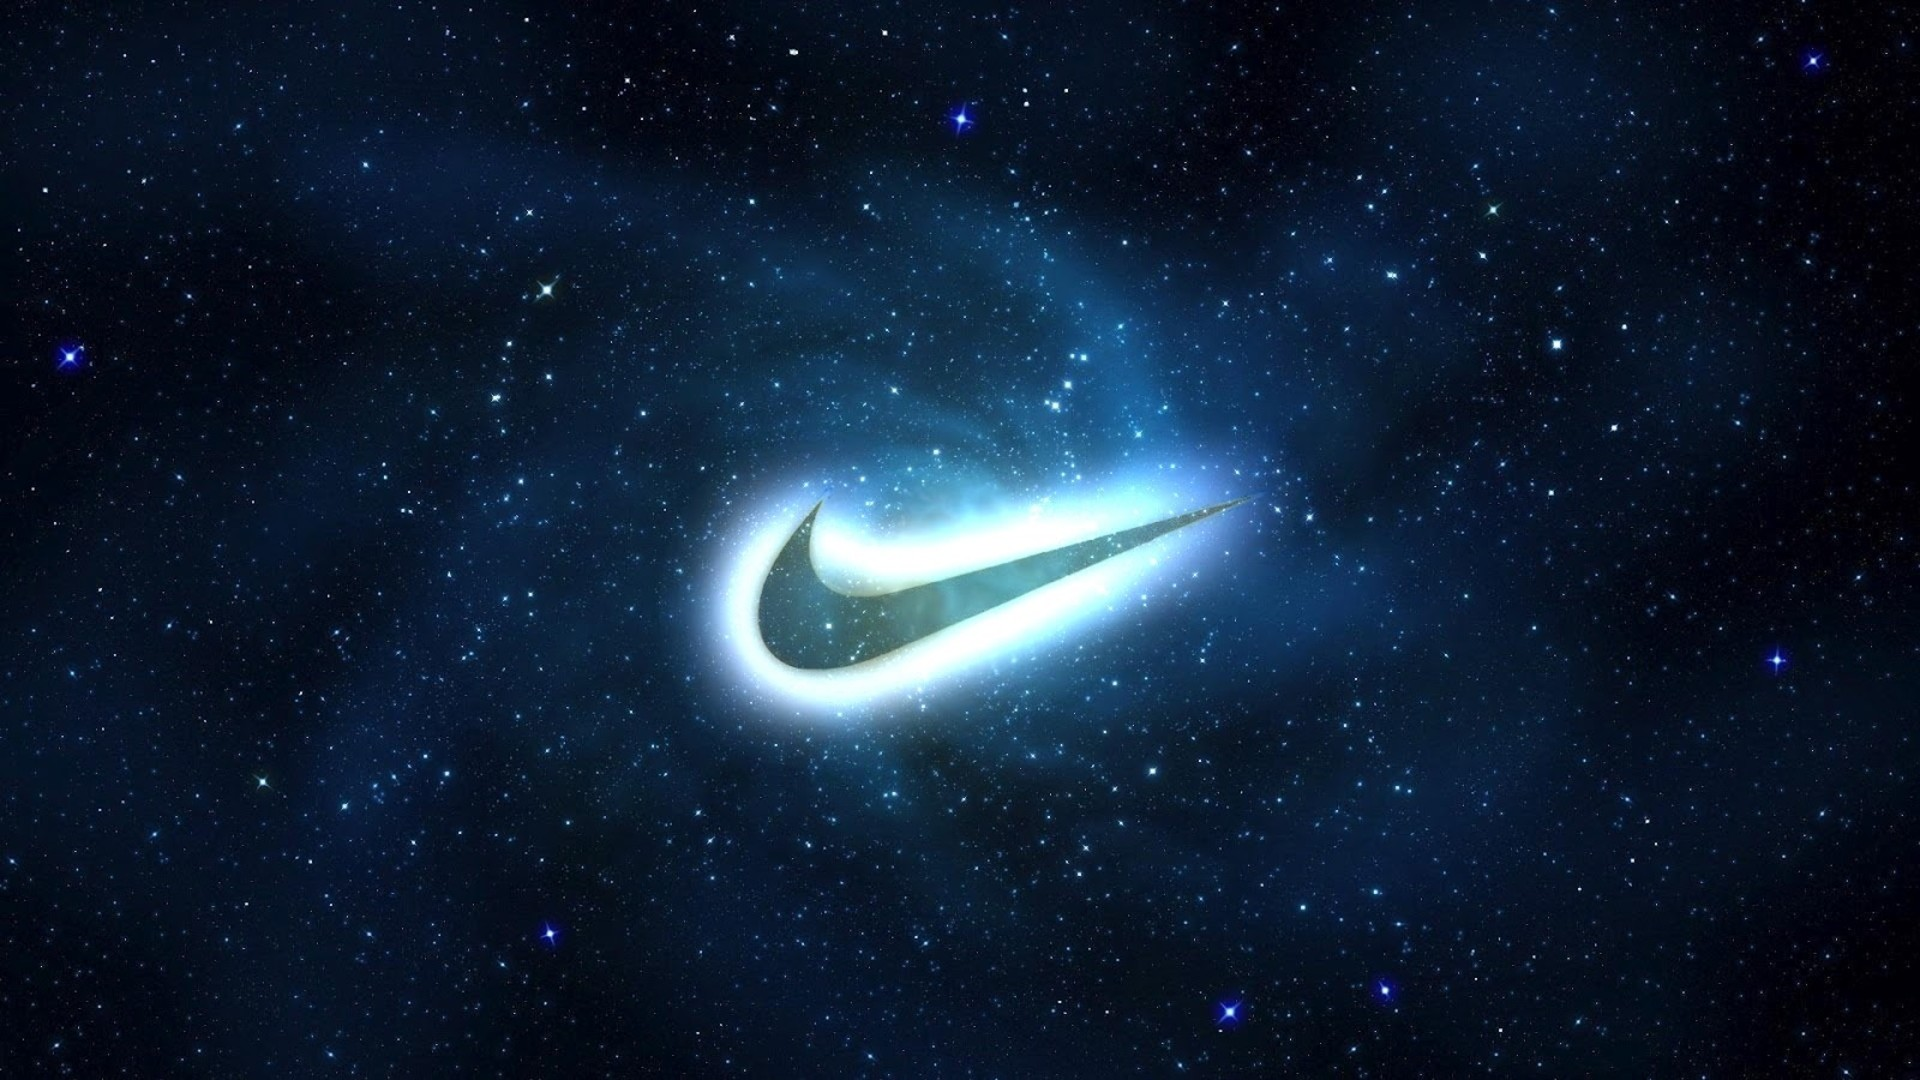 Xiaomi Wallpaper With Logo: Nike Swoosh Wallpaper (56+ Images